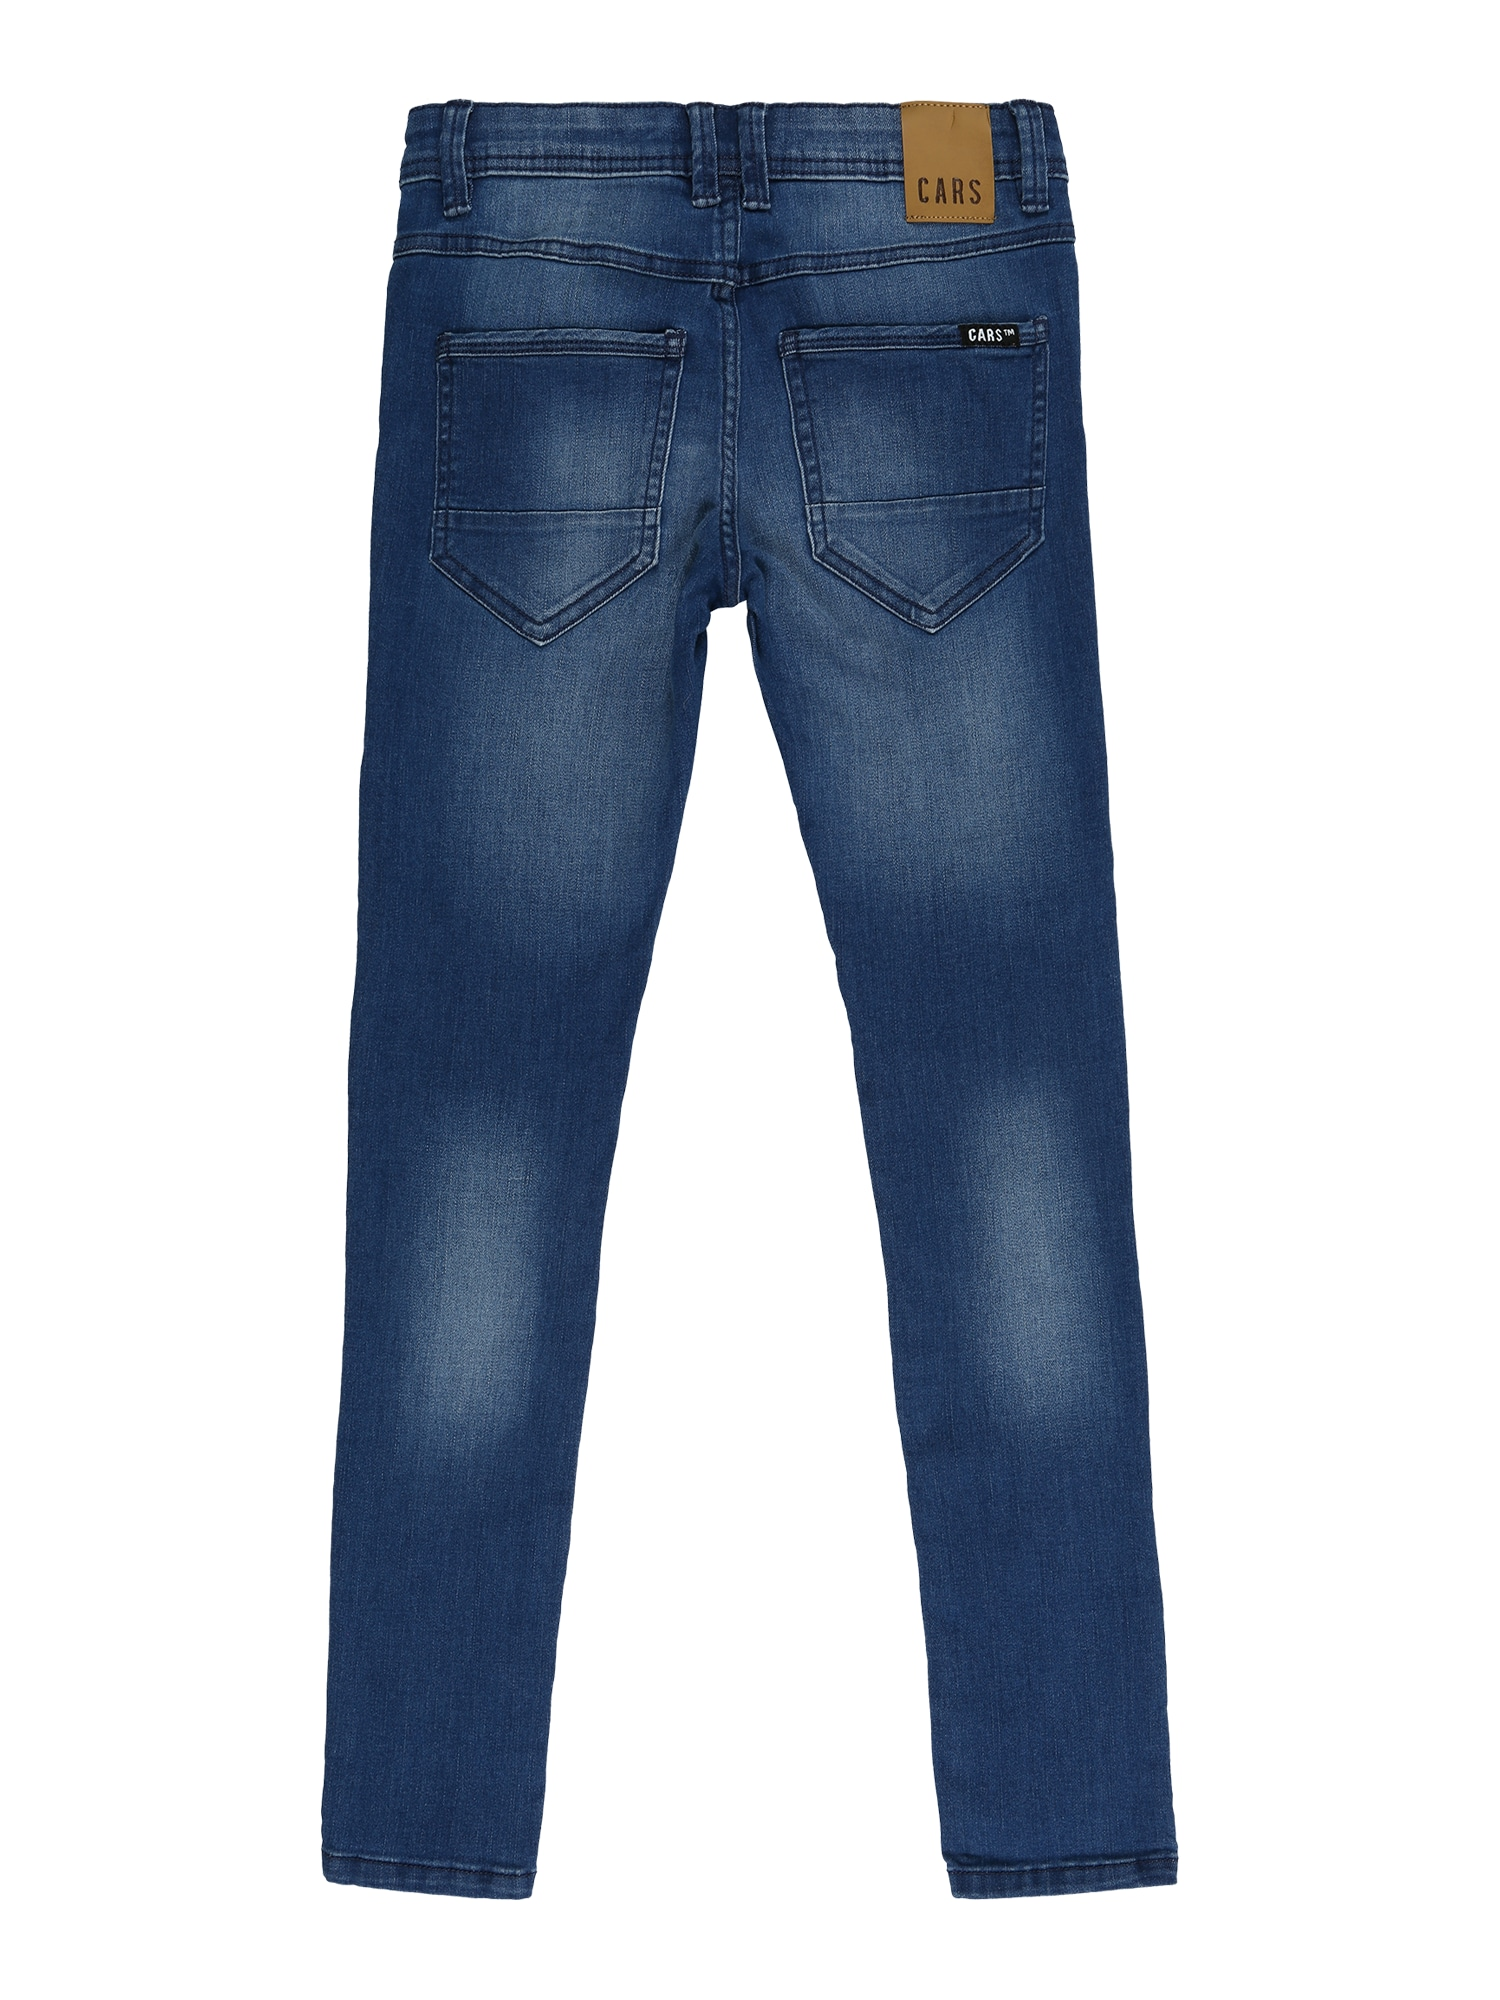 Cars Jeans Jeans 'KIDS DAVIS'  blå denim